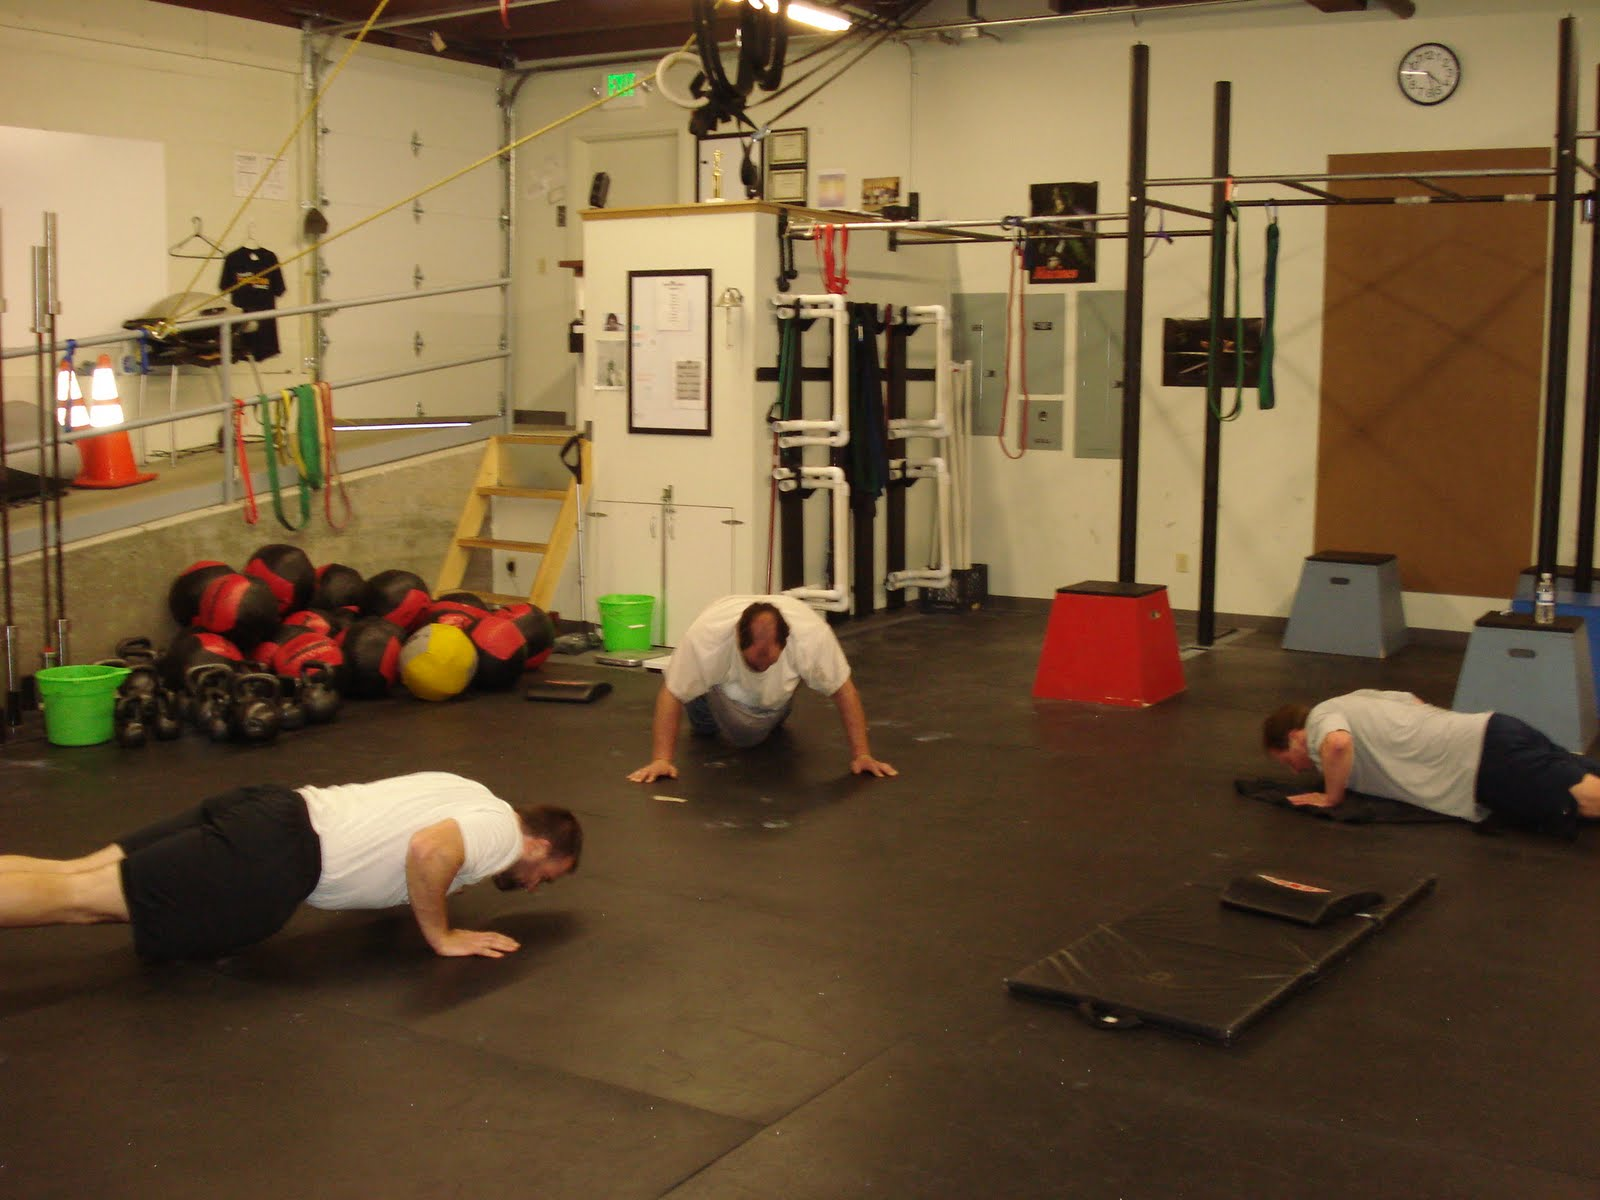 Tabata Something Else Circuit Training Timer Congrats To All That Challenged And Beat The Terrible 20 Sec Of Work 10 Rest For 8 Rounds Each Exercise Pull Ups Push